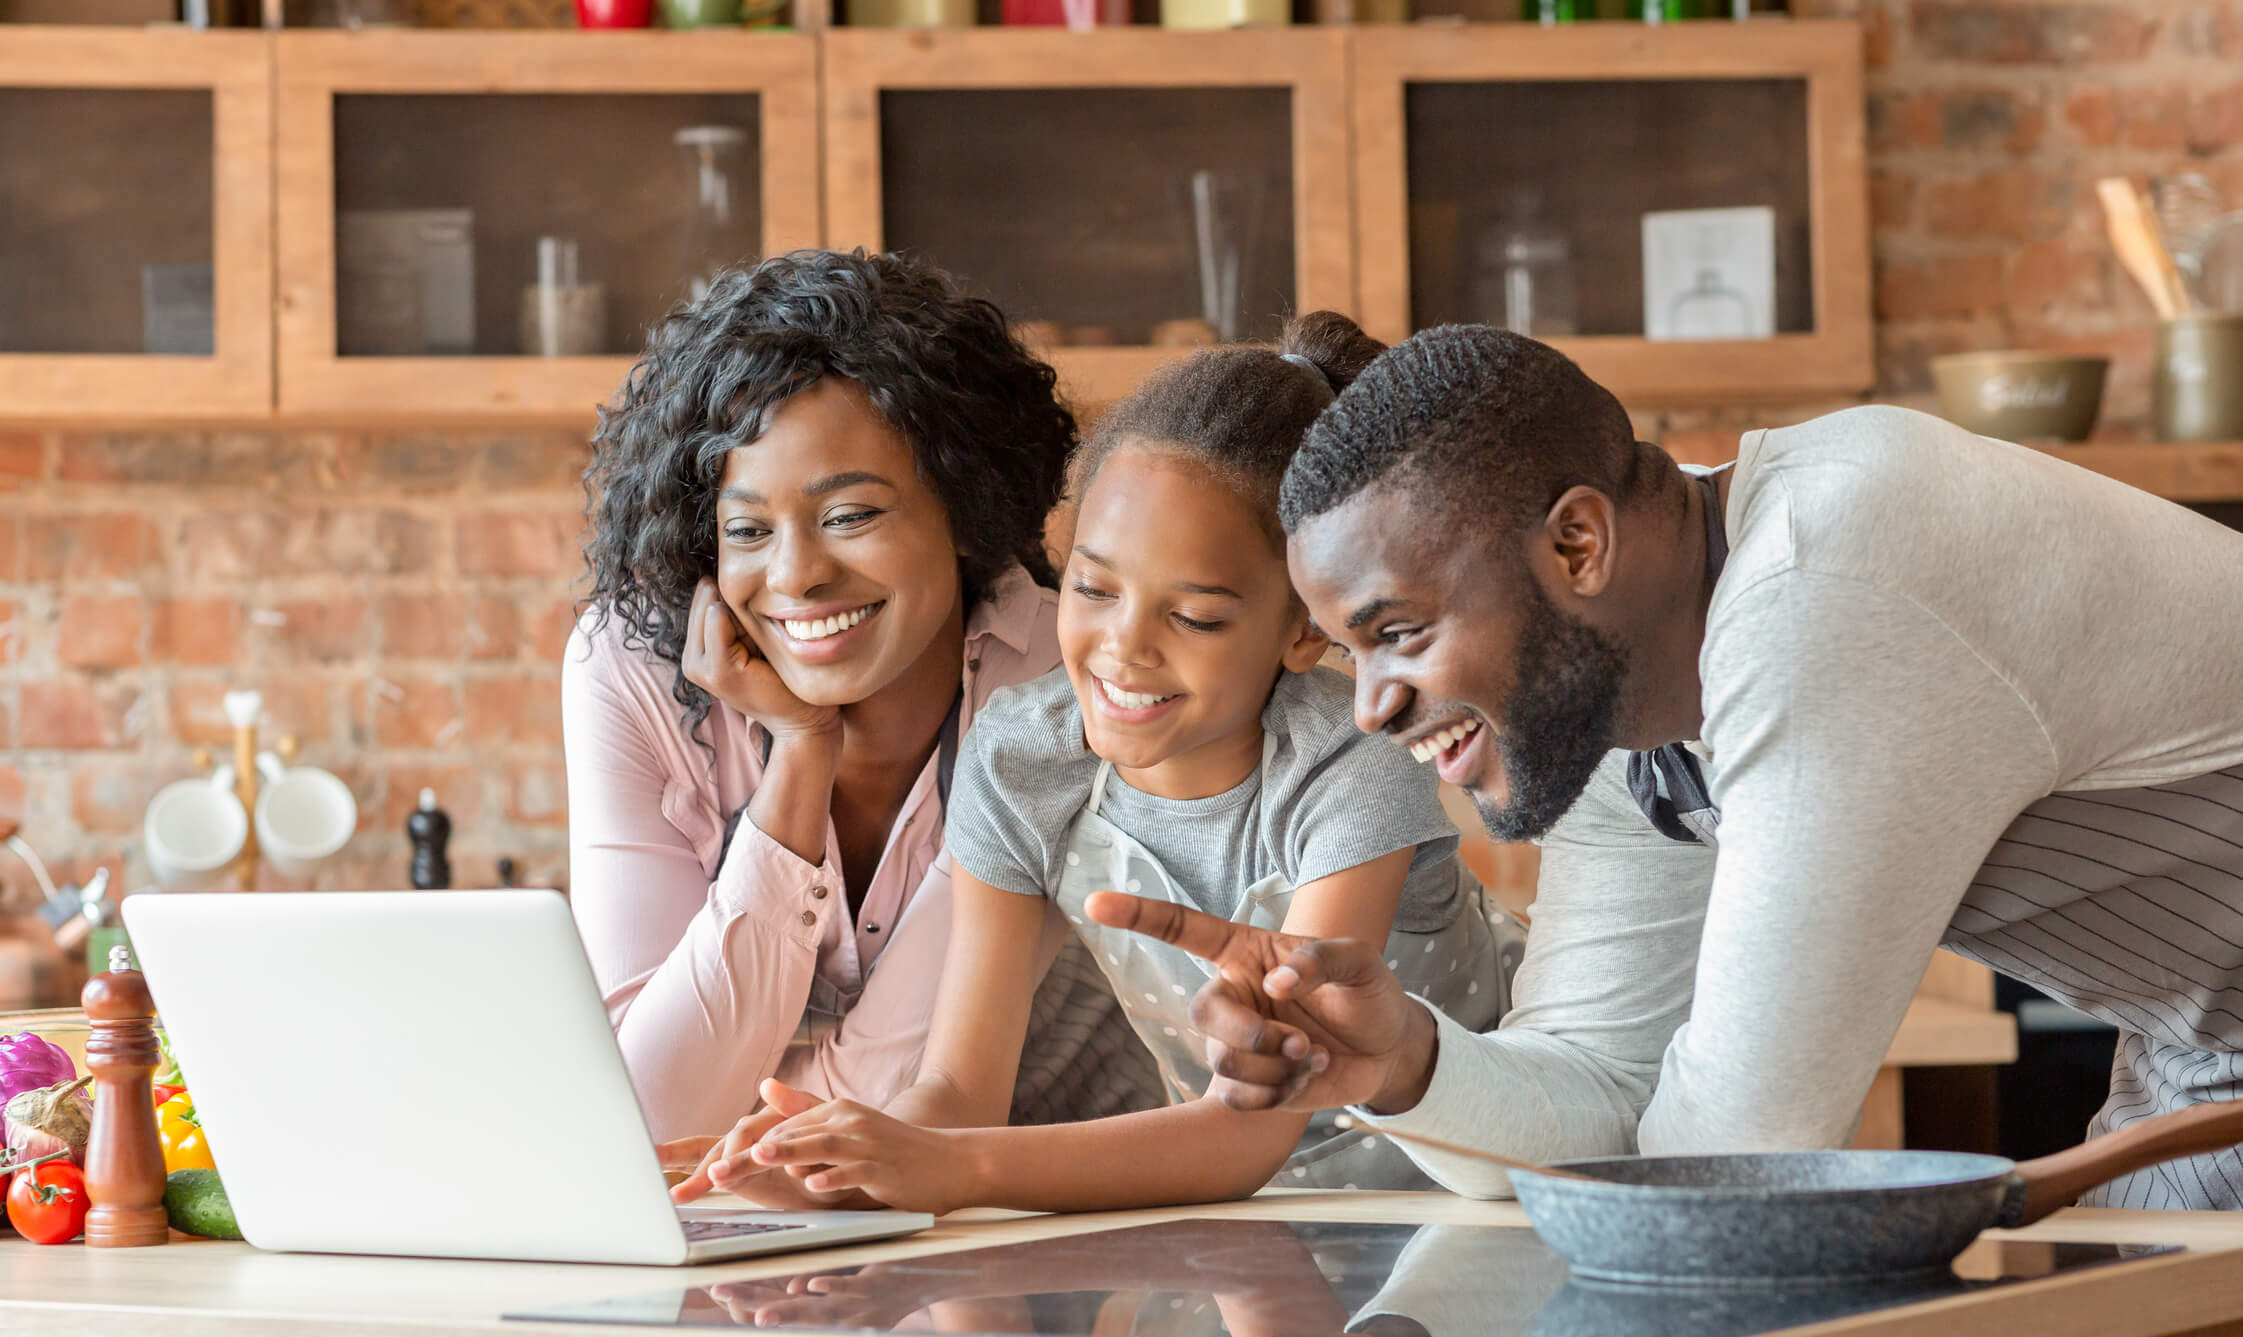 Parents and child looking at a laptop screen together